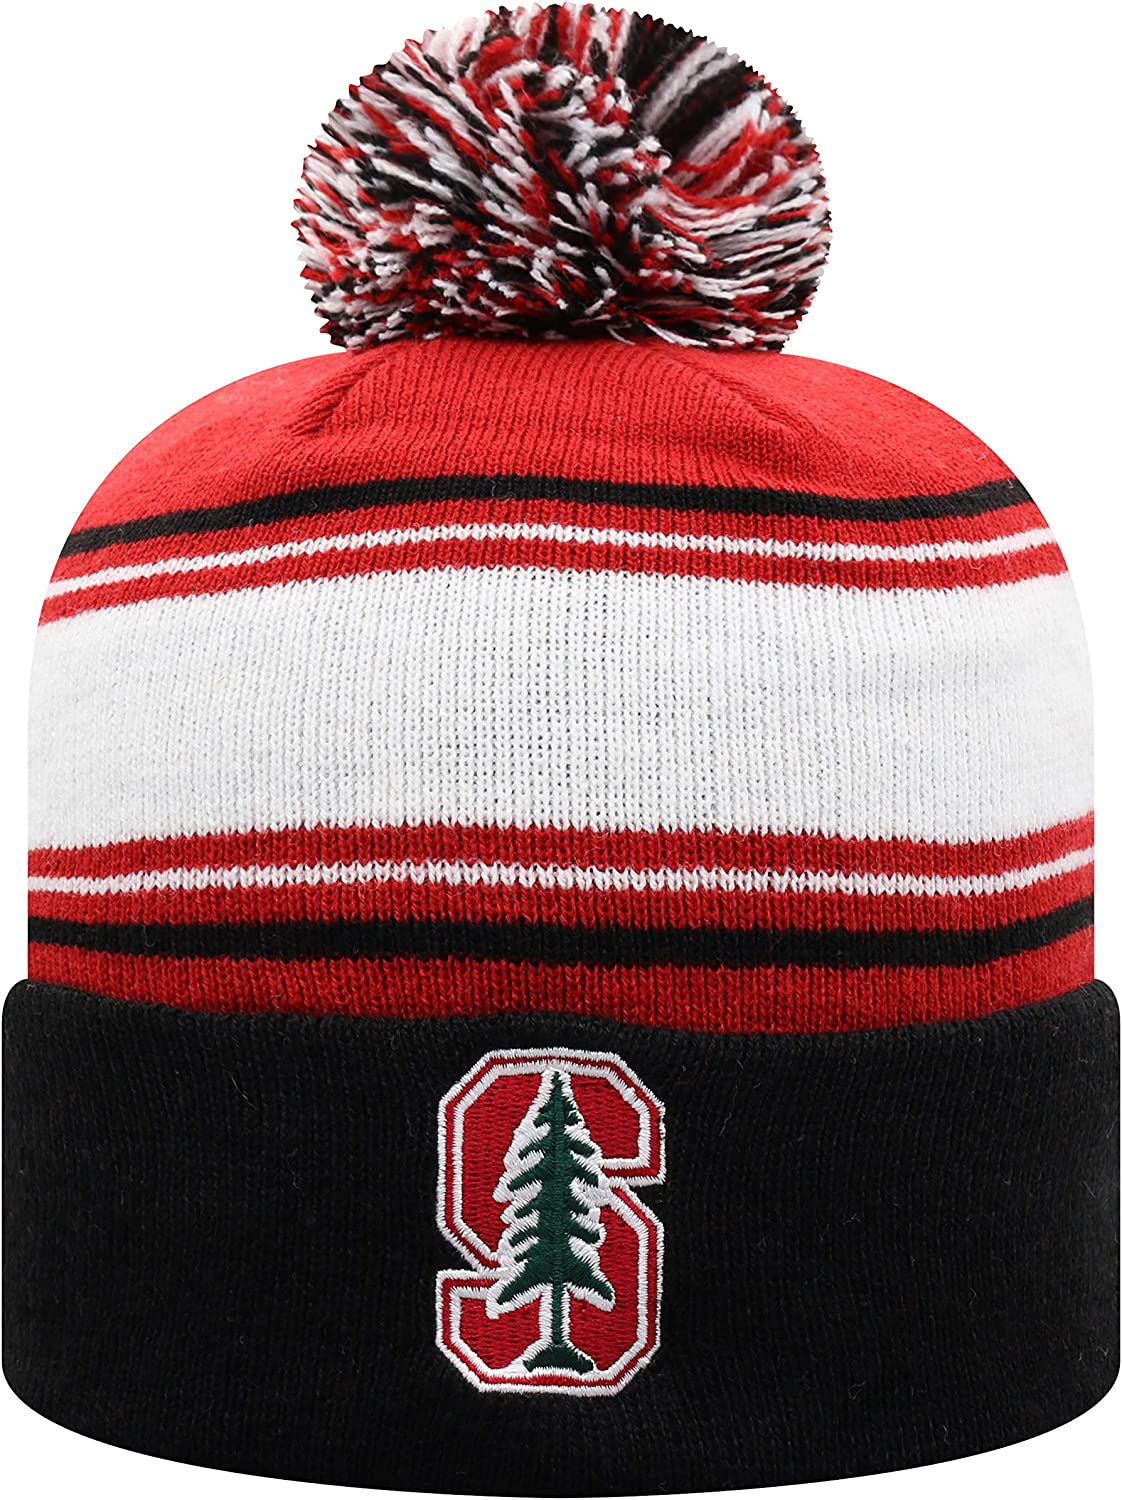 Top of the World NCAA Womens Team Color Classic Knit Team Icon